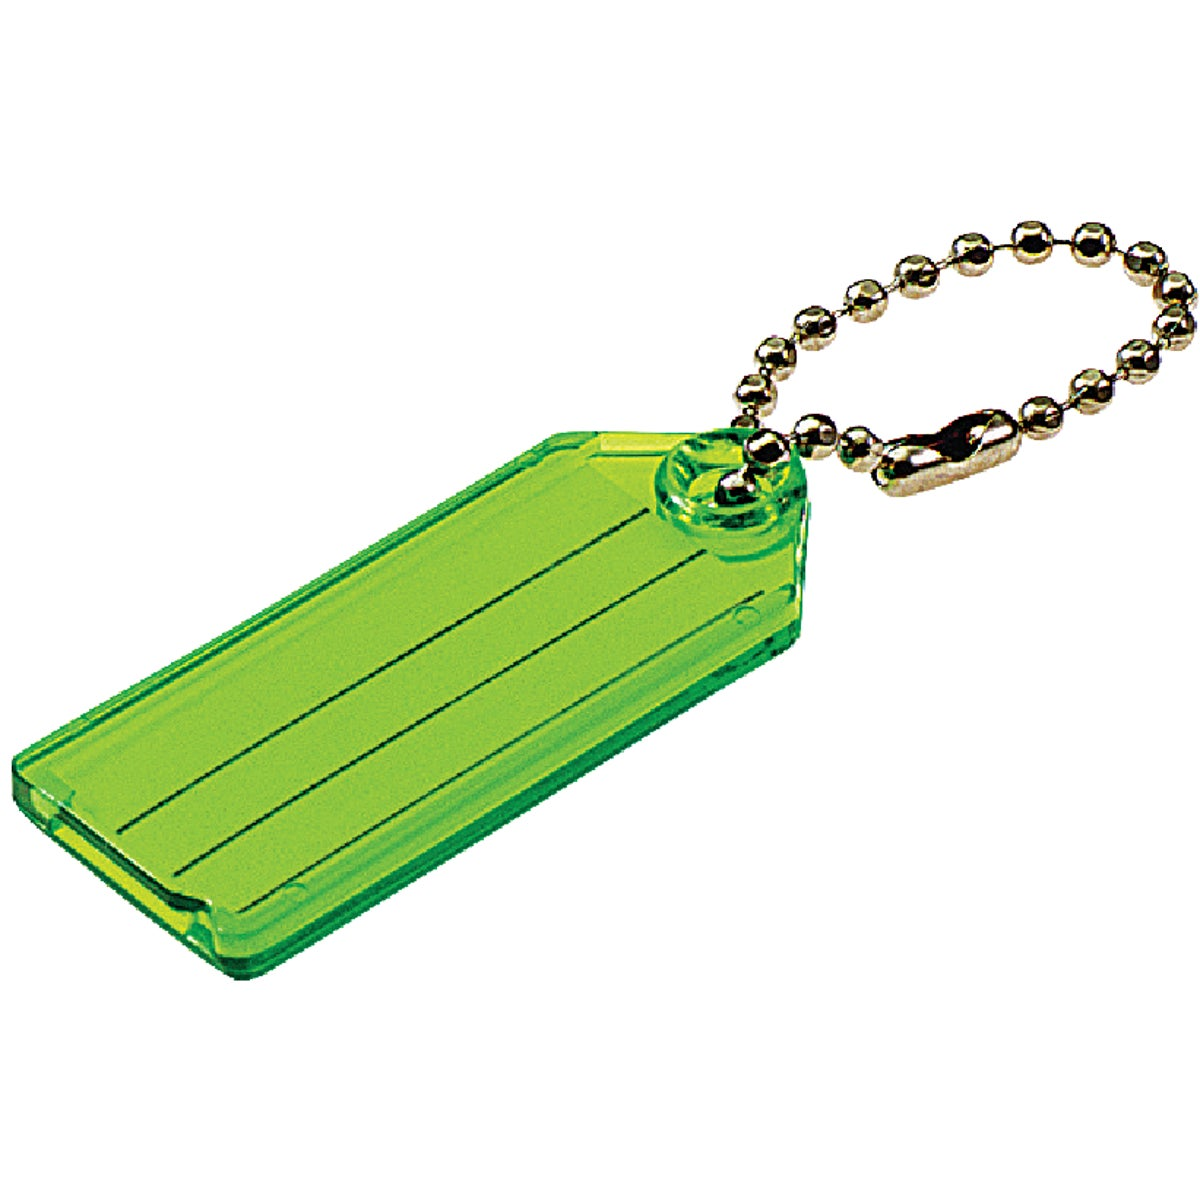 100PK ID KEY TAG - 10100 by Lucky Line Prod Inc